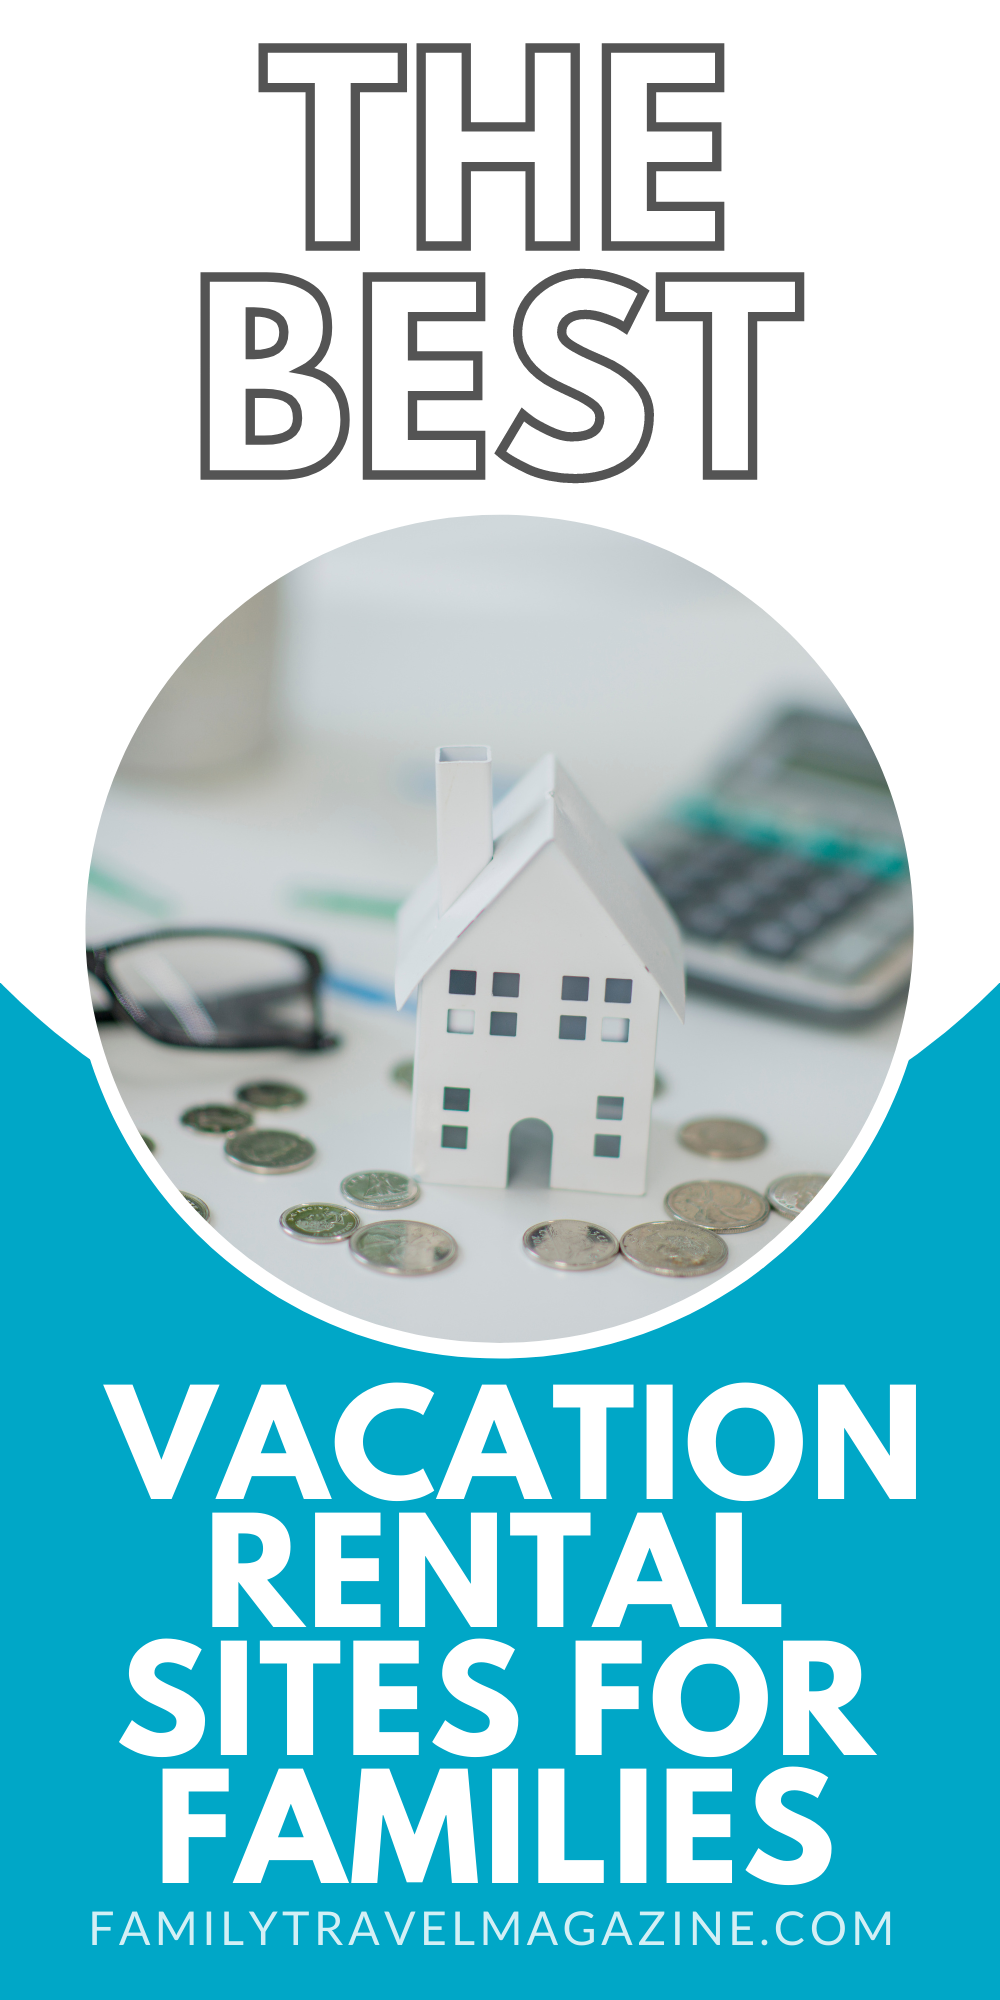 Are you considering renting a vacation home? You may need to search for the perfect home. Here are the best vacation rental sites for families